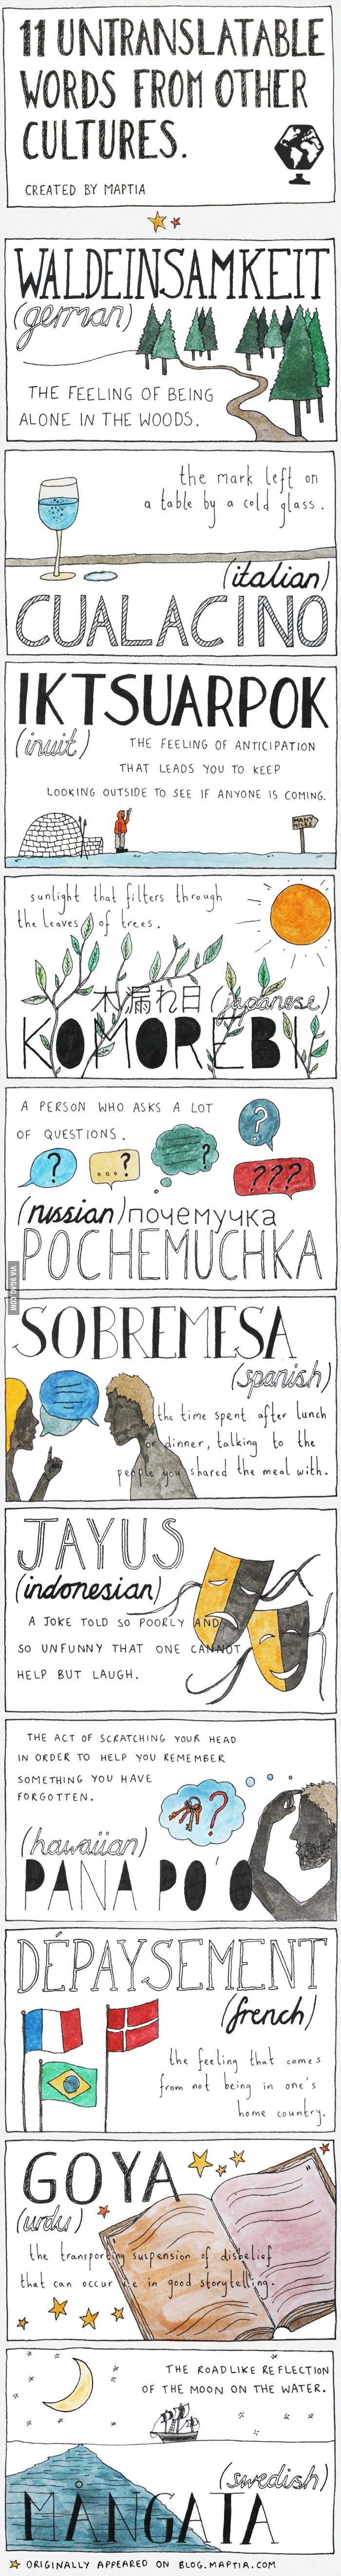 Untranslable words, shows a lot about a different cultures cultures, languages